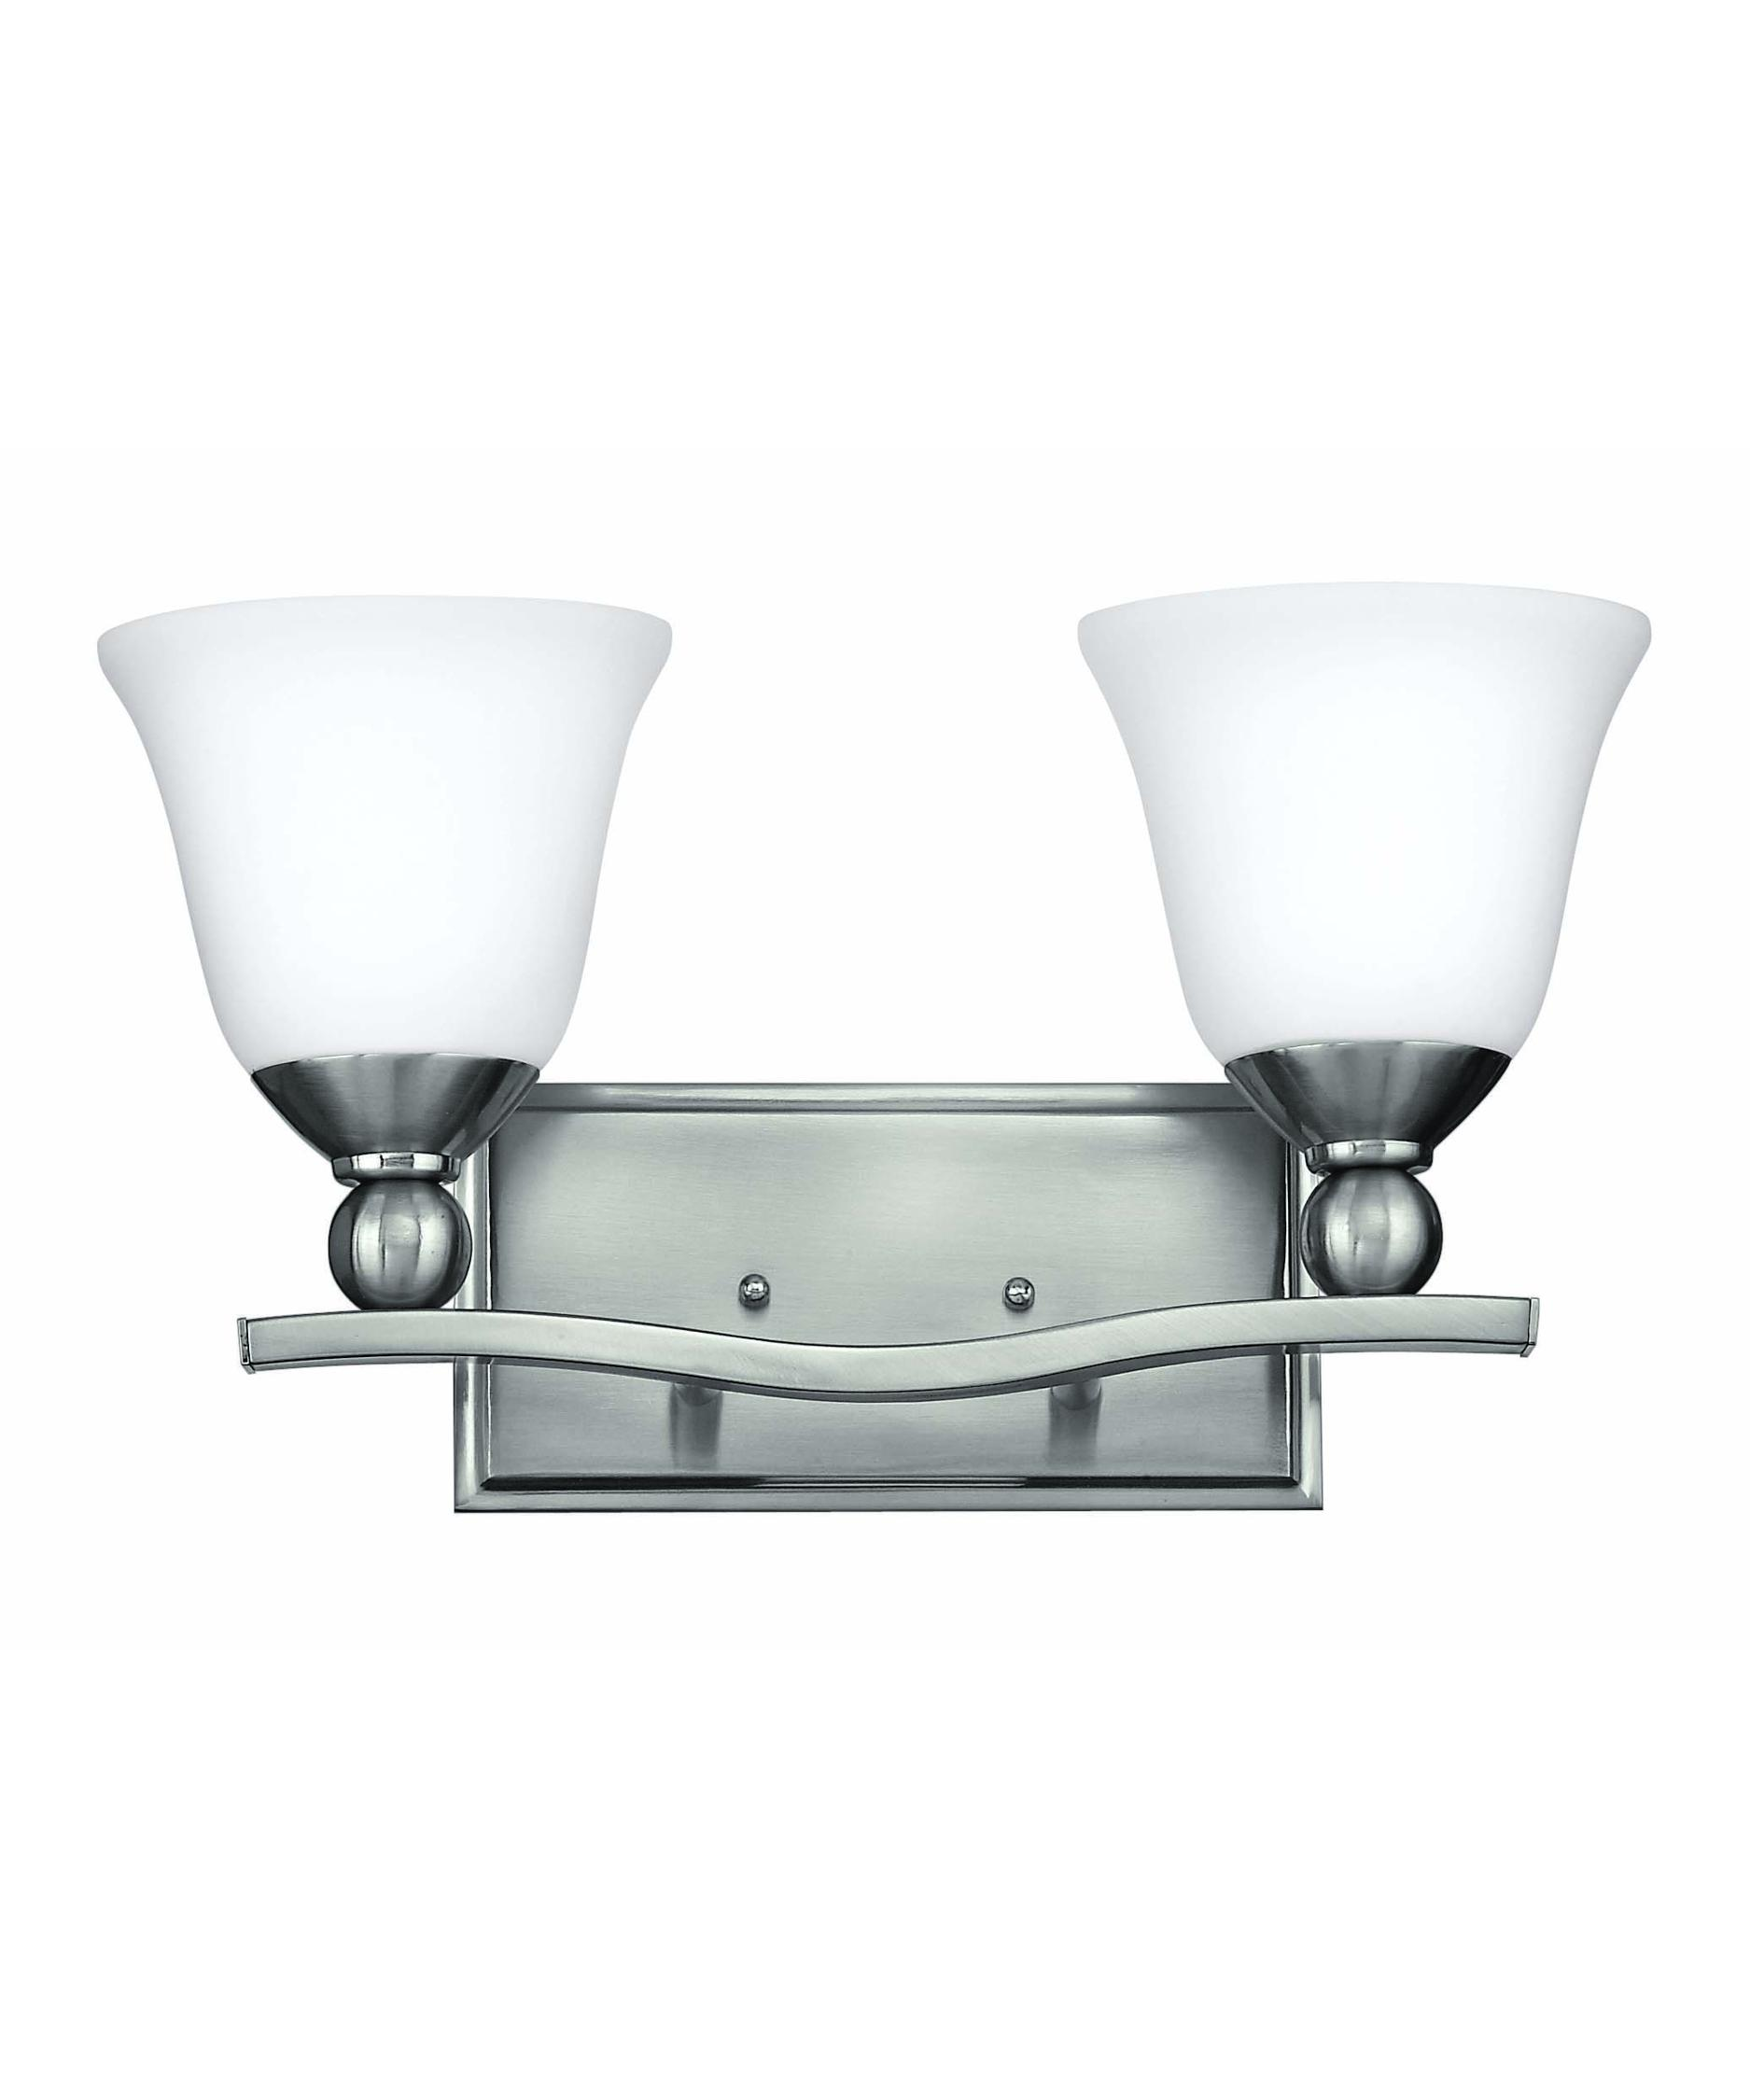 Hinkley lighting 5892 bolla 16 inch bath vanity light for Hinkley bathroom vanity lighting